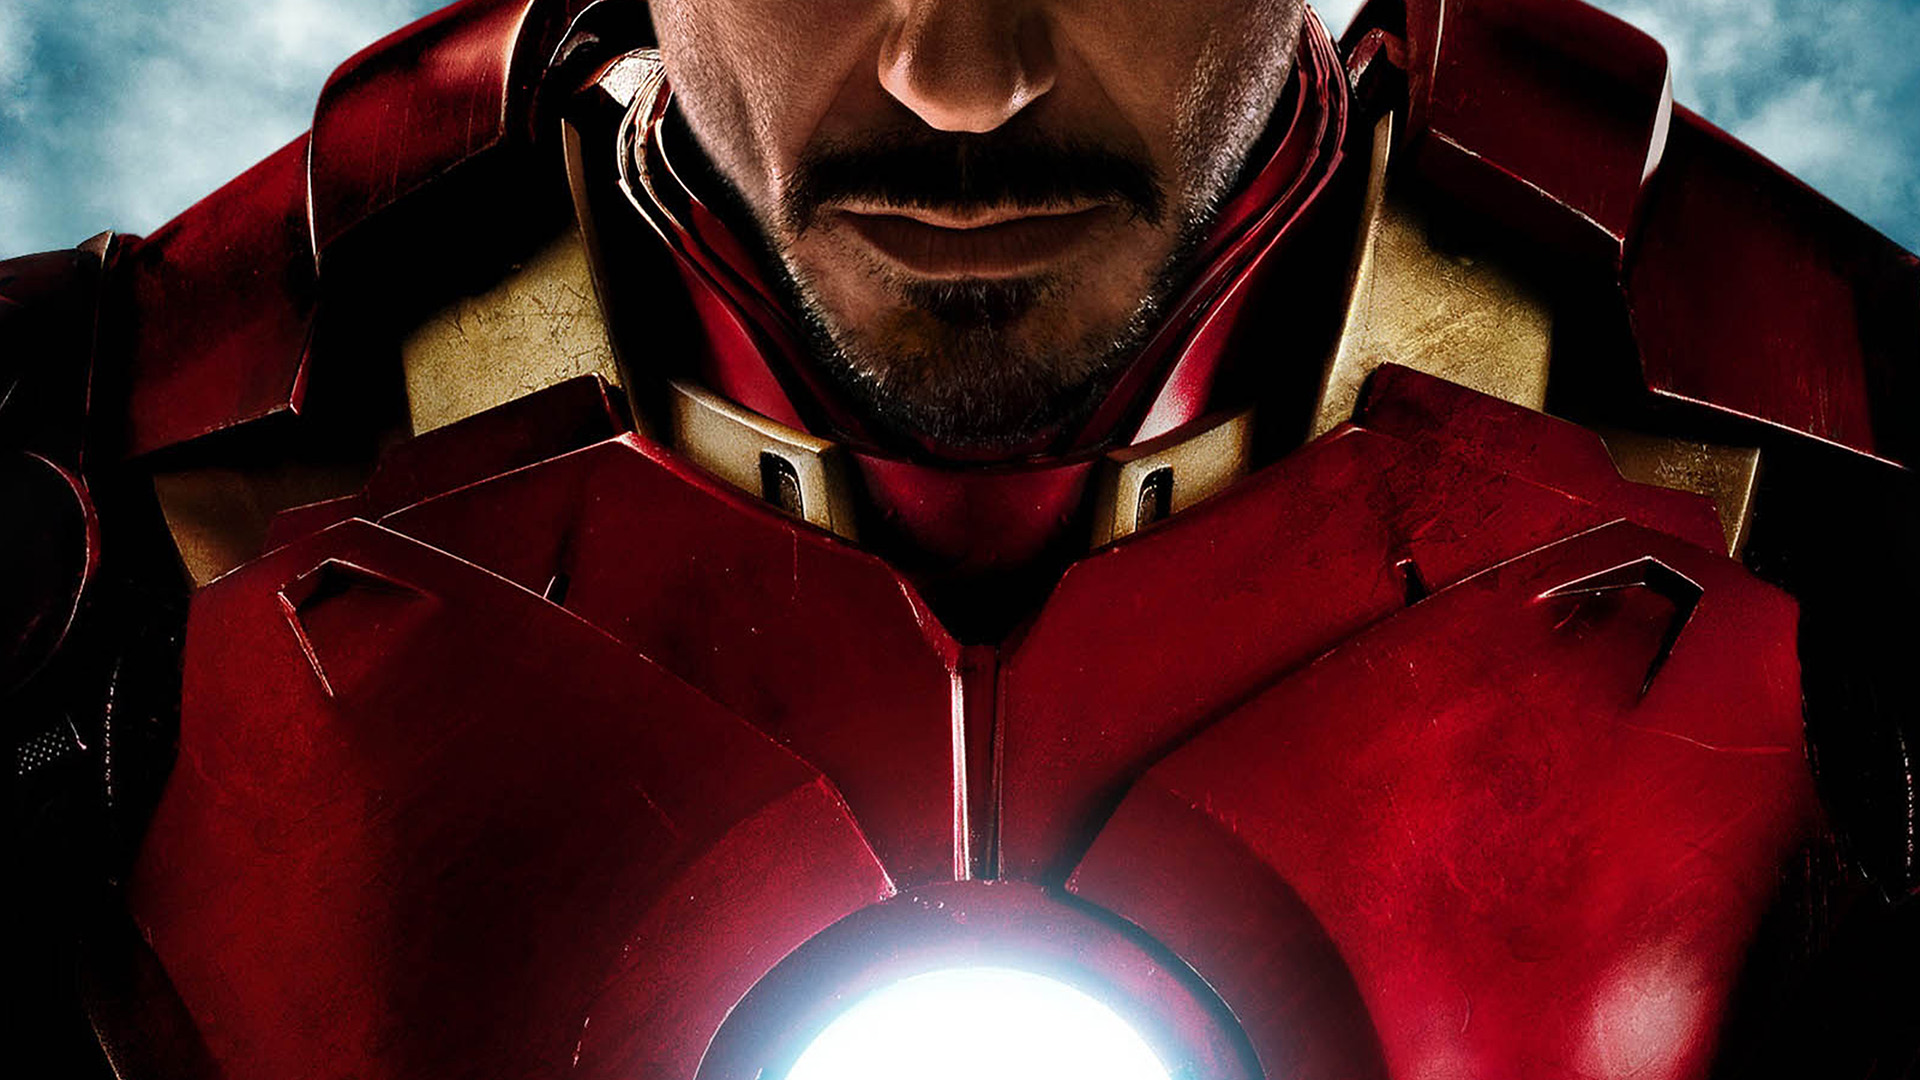 Fall Mac Wallpaper Ar45 Ironman Angry Hero Superhero Red Avengers Wallpaper